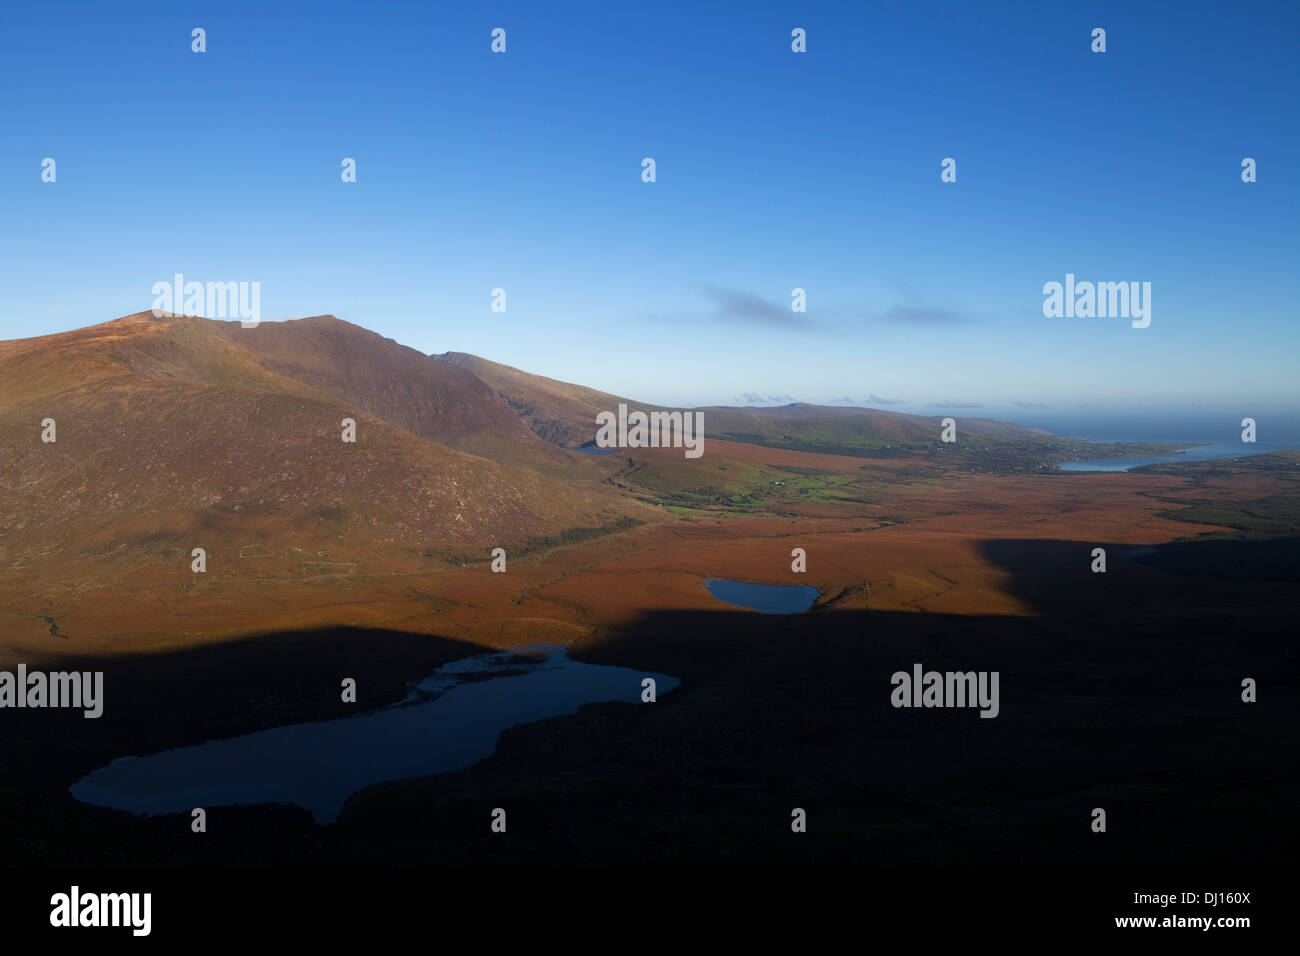 Lakes below the Conor Pass with Brandon Mountain and distant Castlegregory, Dingle Peninsula, County Kerry, Ireland - Stock Image